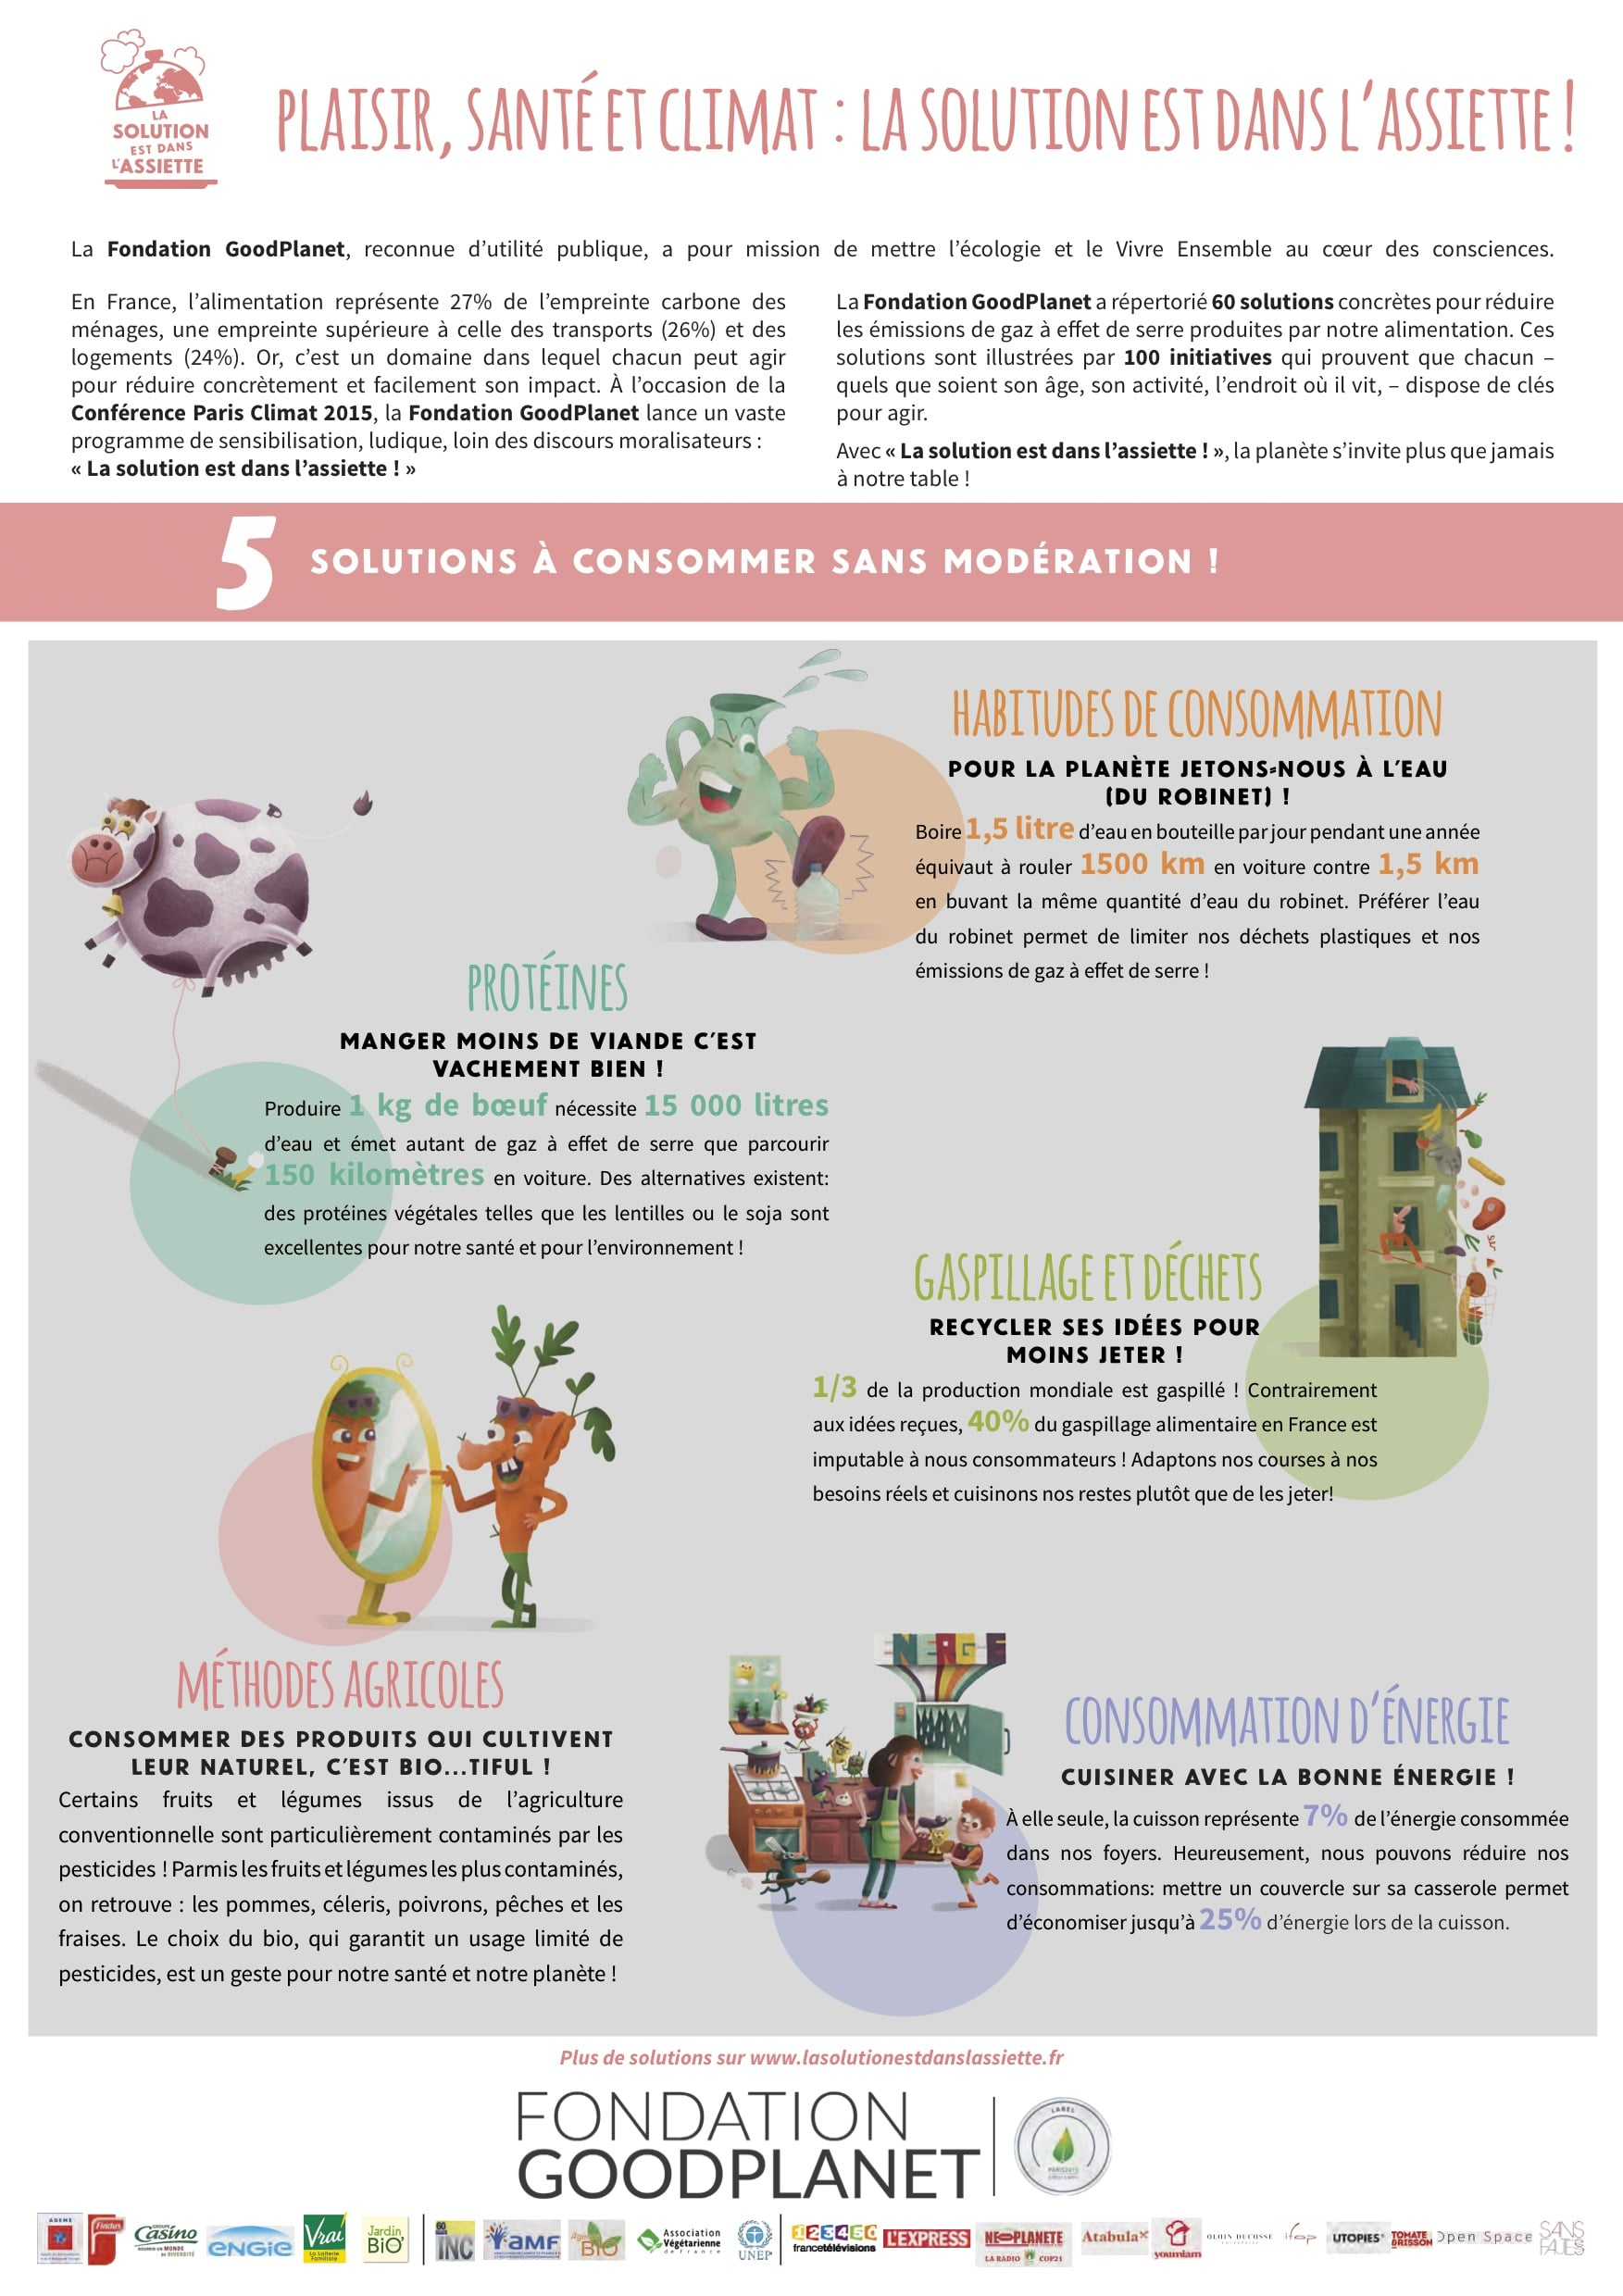 la fondation goodplanet a d velopp un calendrier de fruits et l gumes de saison illustr par. Black Bedroom Furniture Sets. Home Design Ideas